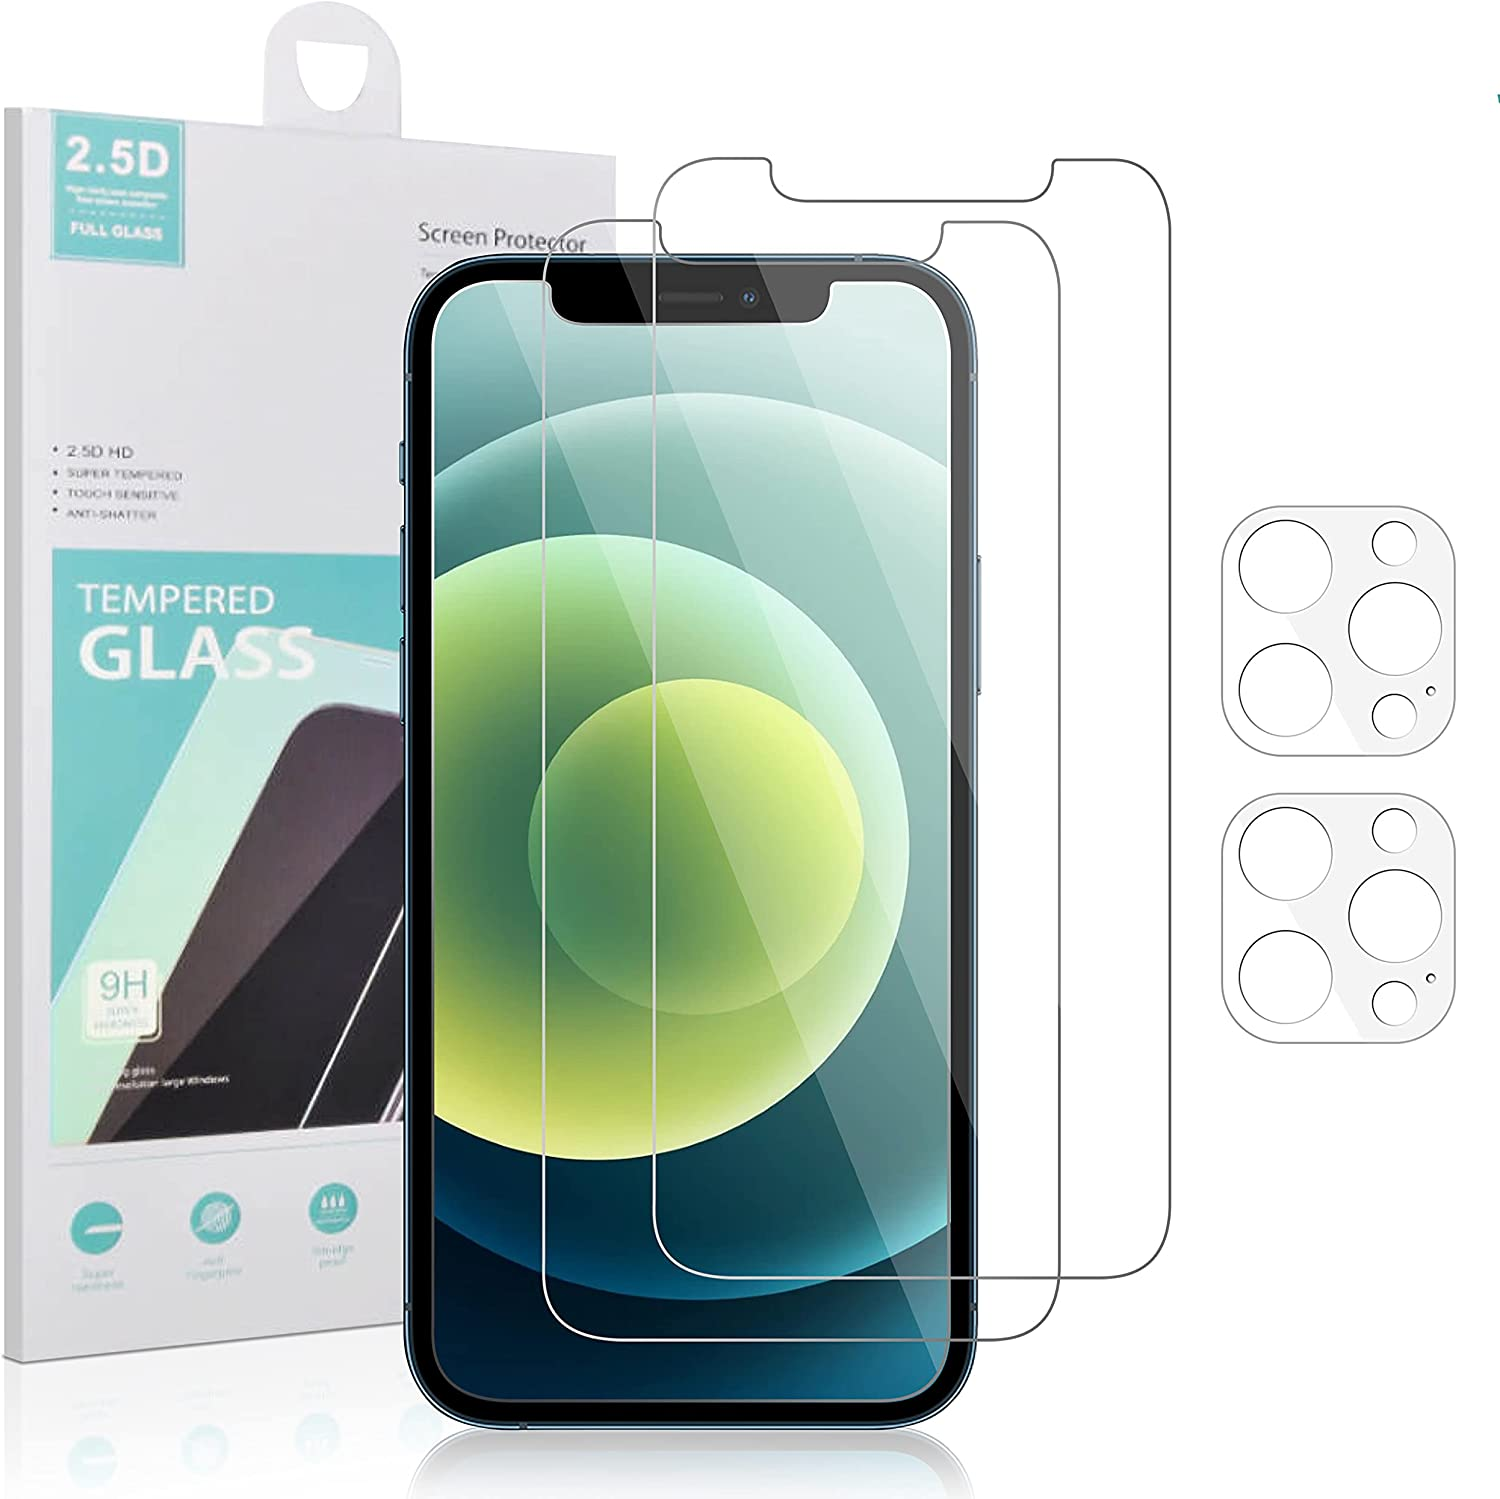 Iphone 12 Pro Max [ 2 Pack Tempered Glass Screen Protector + 2 Pack Camera Lens Protector with Cleaning Wipes and Dust Absorber ]